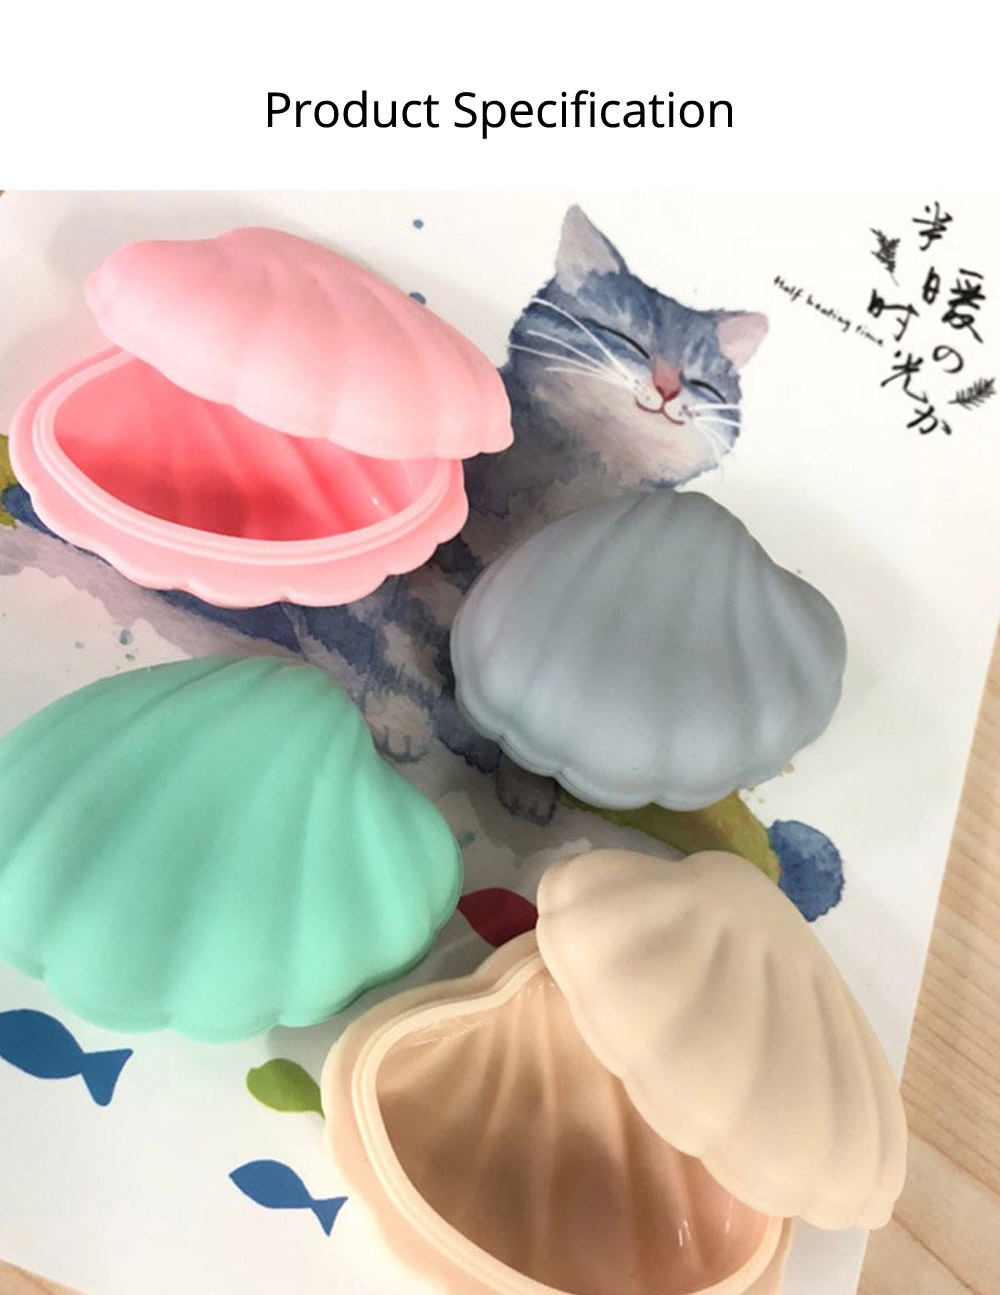 Scallop Pill Storage Box Multi-function Silicone Dustproof Storage Box for Capsule Candy Jewelry Gadgets 7